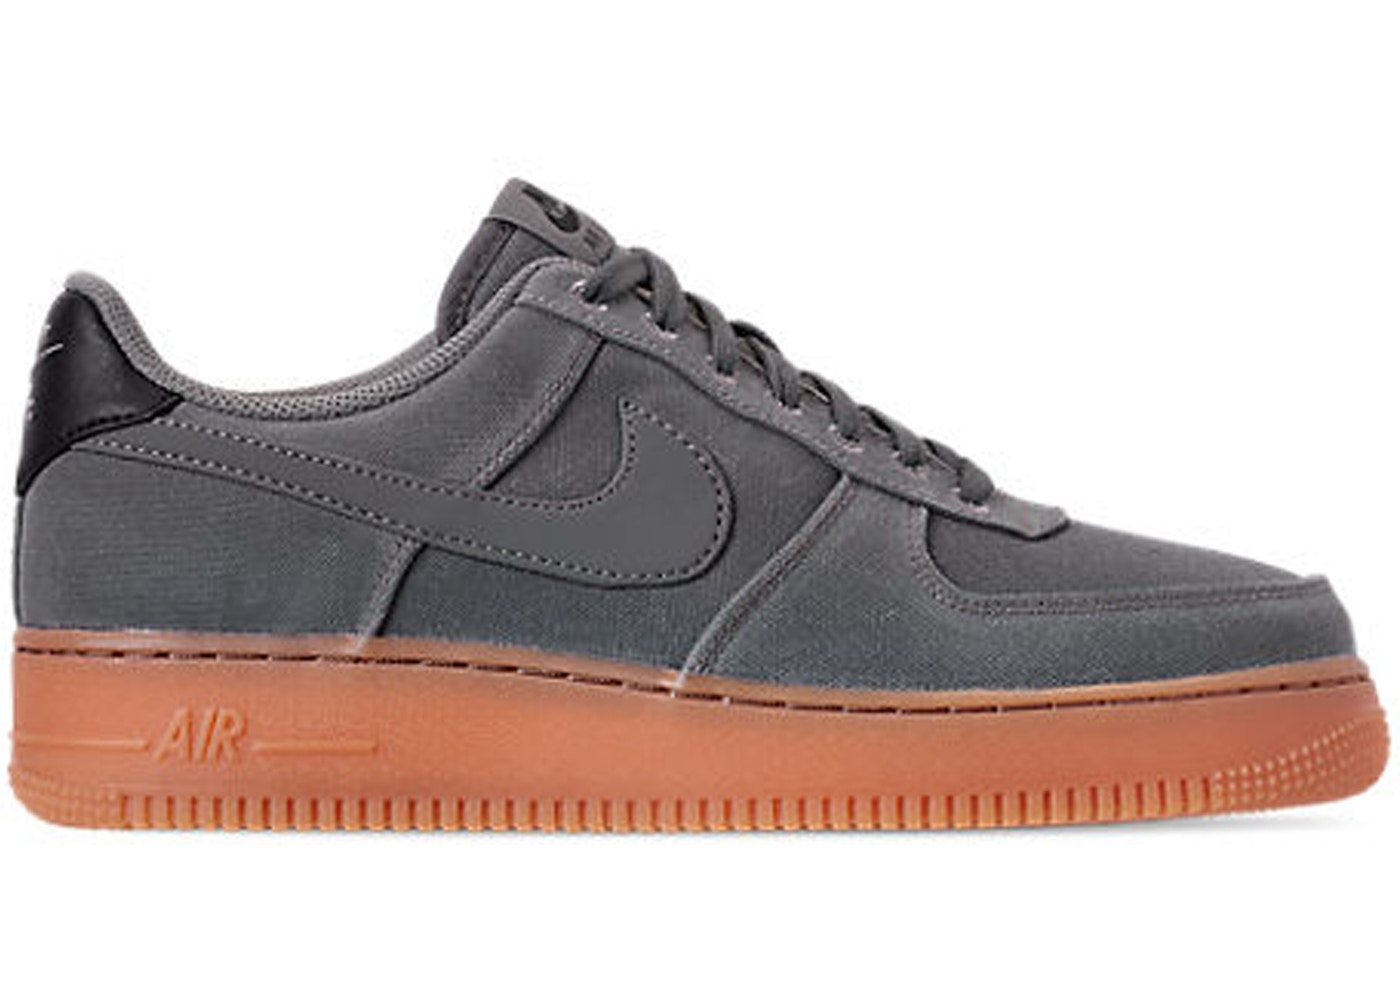 39c0ba25d5a Air Force 1 Low '07 Pewter Gum - AQ0117-001